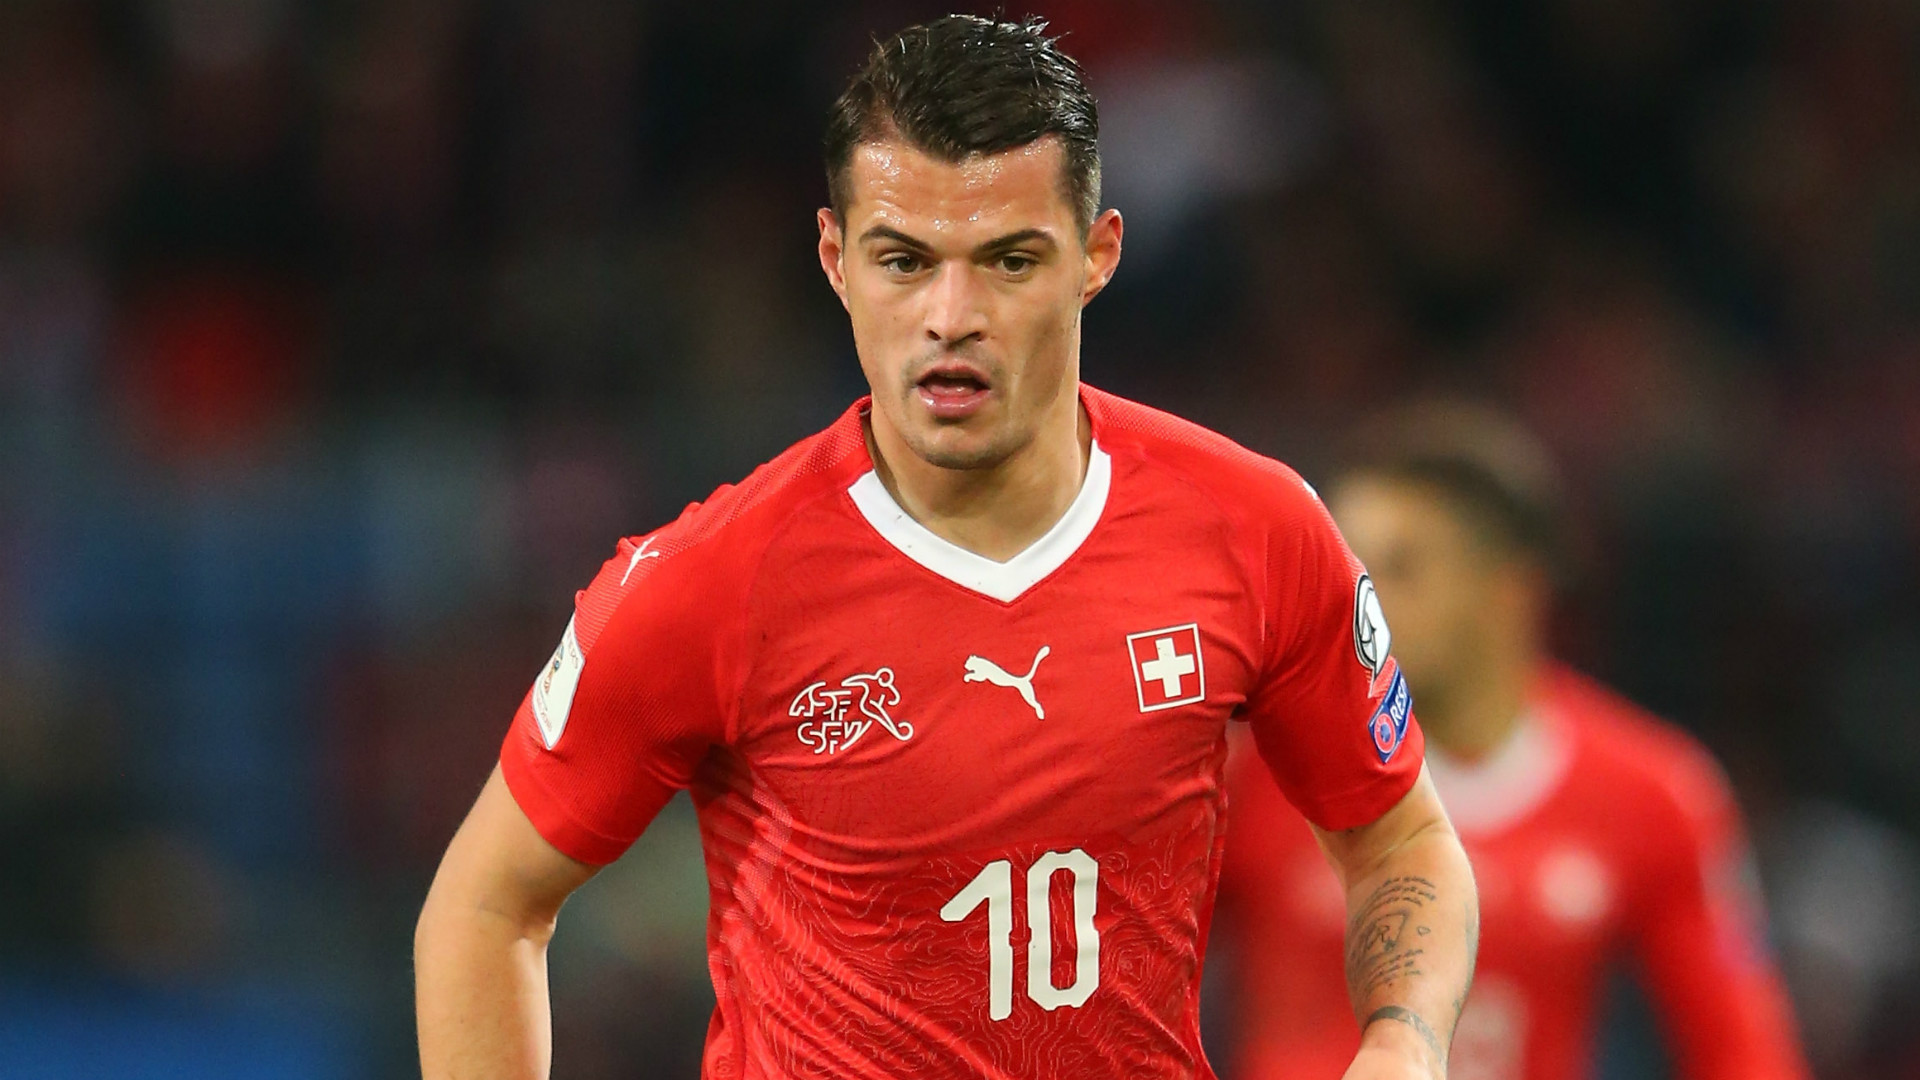 Arsenal midfielder Granit Xhaka relieved to escape serious injury